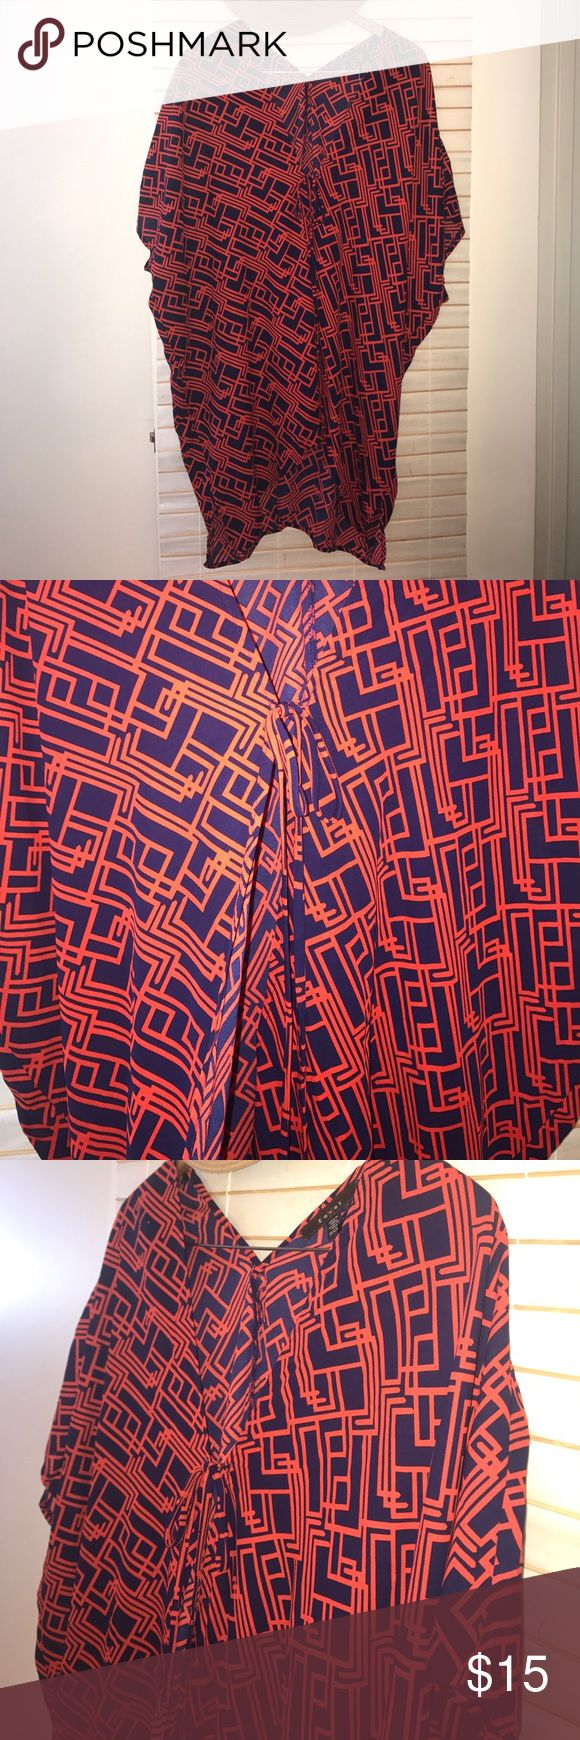 Beach coverup or kimono Red (almost a dark burnt orange) & navy blue Kimono style beach cover up. Large oversized fit worn best over your favorite bathing suit. Bat wing arms with large arm holes. Tie front mid bust line. Front hem is shorter than back. Small v-neck back. Could also be worn as a duster. Pics don't do this justice. It's adorable on. Will fit small to medium. 100% polyester Swim Coverups